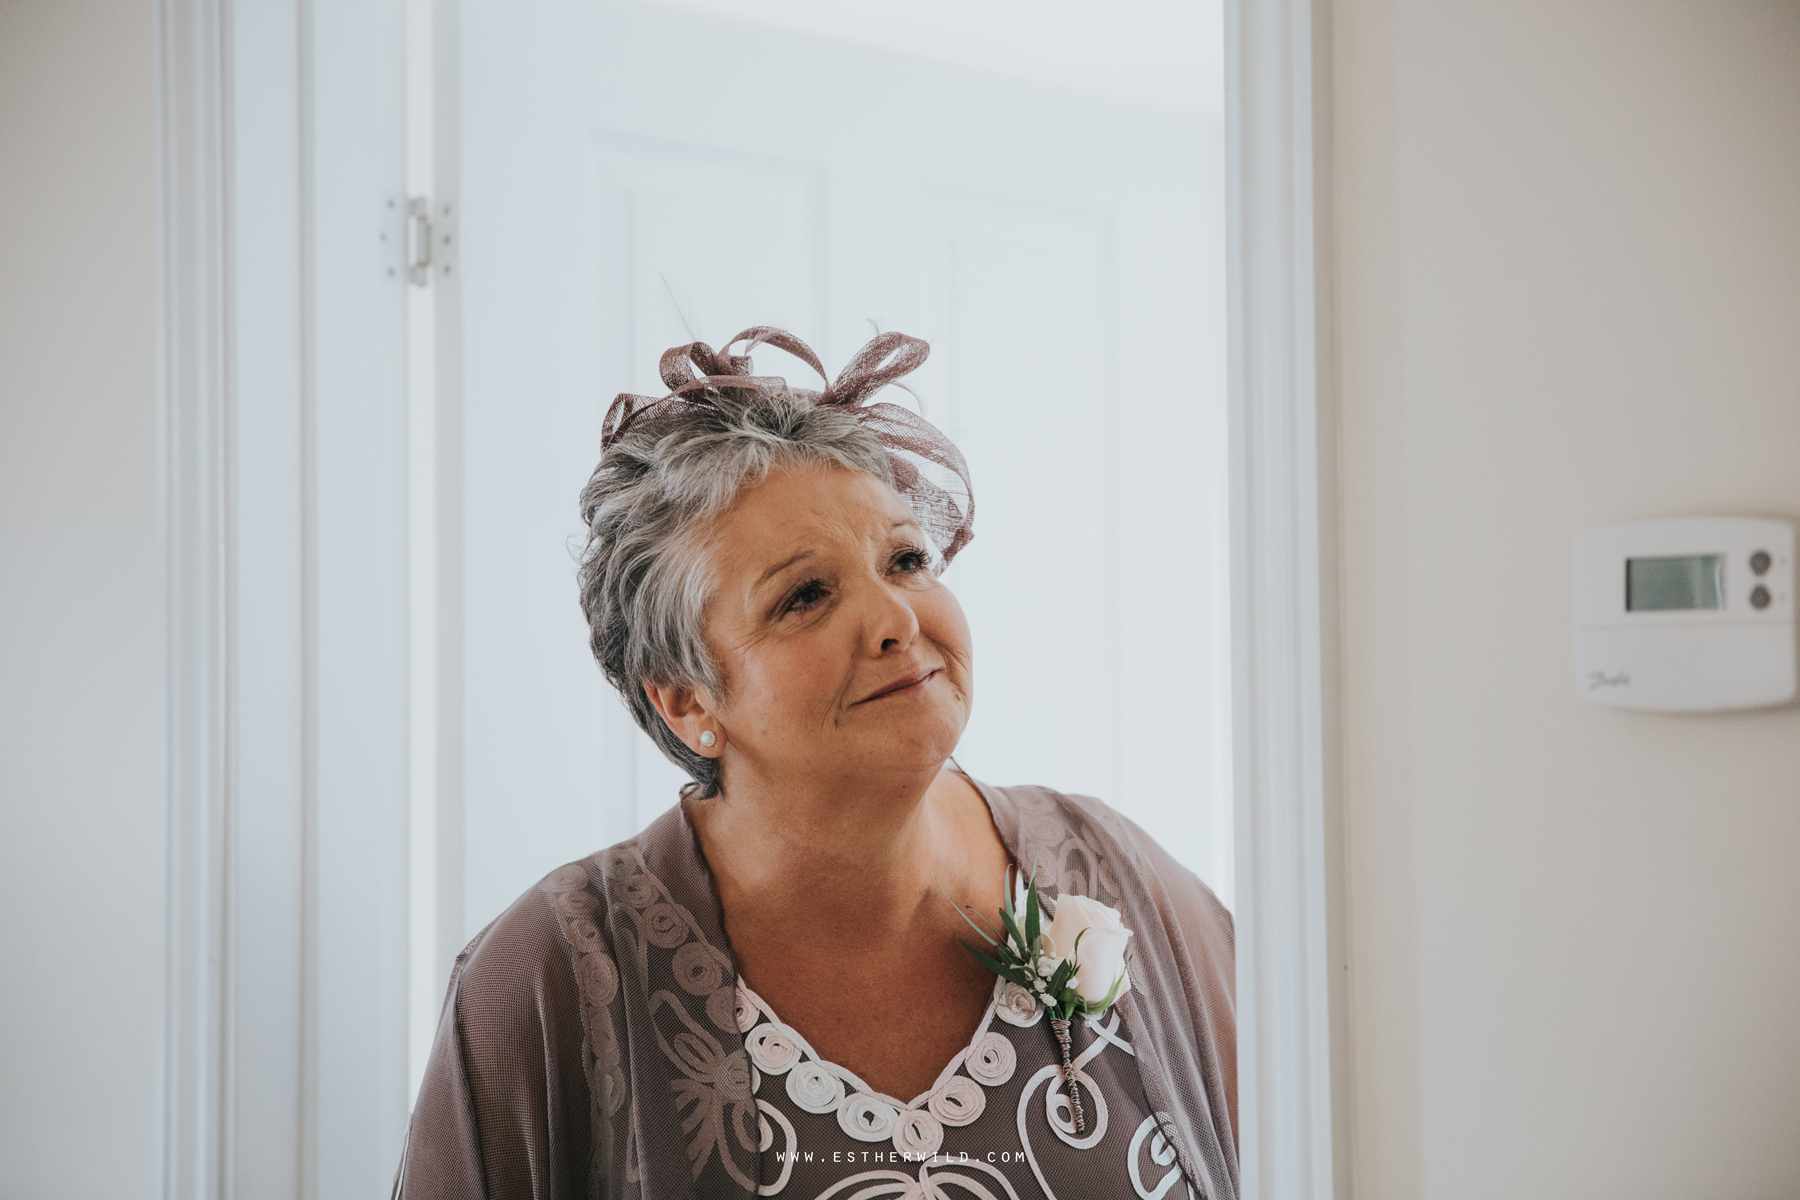 Swaffham_Wedding_Castle_Acre_Norfolk_Esther_Wild_Photographer_Wedding_Photography_3R8A0310.jpg